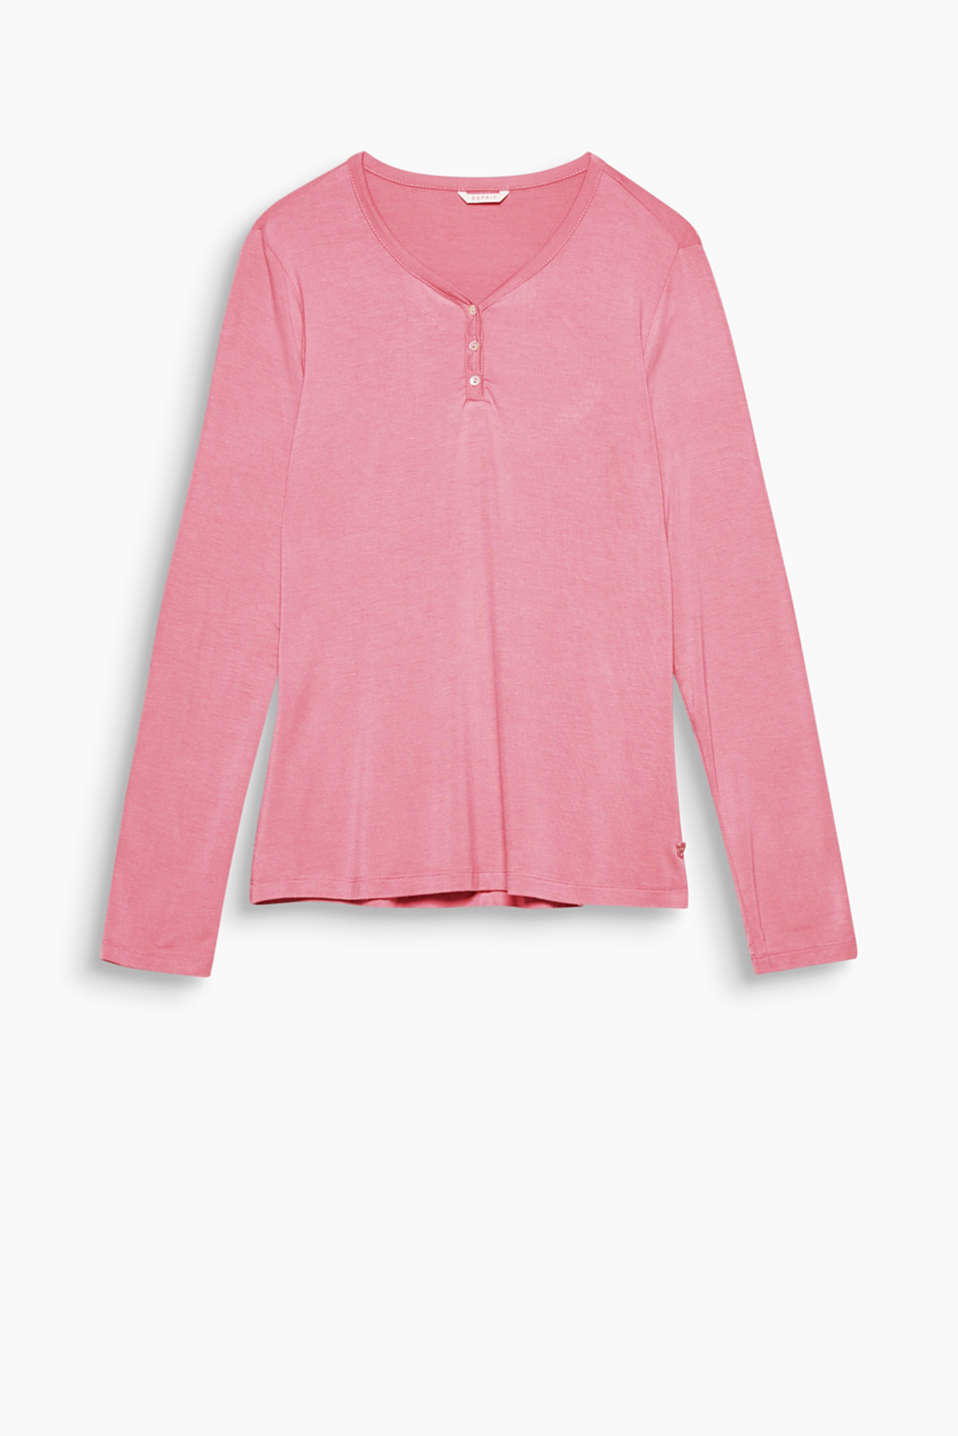 Great for mixing and matching and feels fantastic against the skin: plain long sleeve top with a button placket!